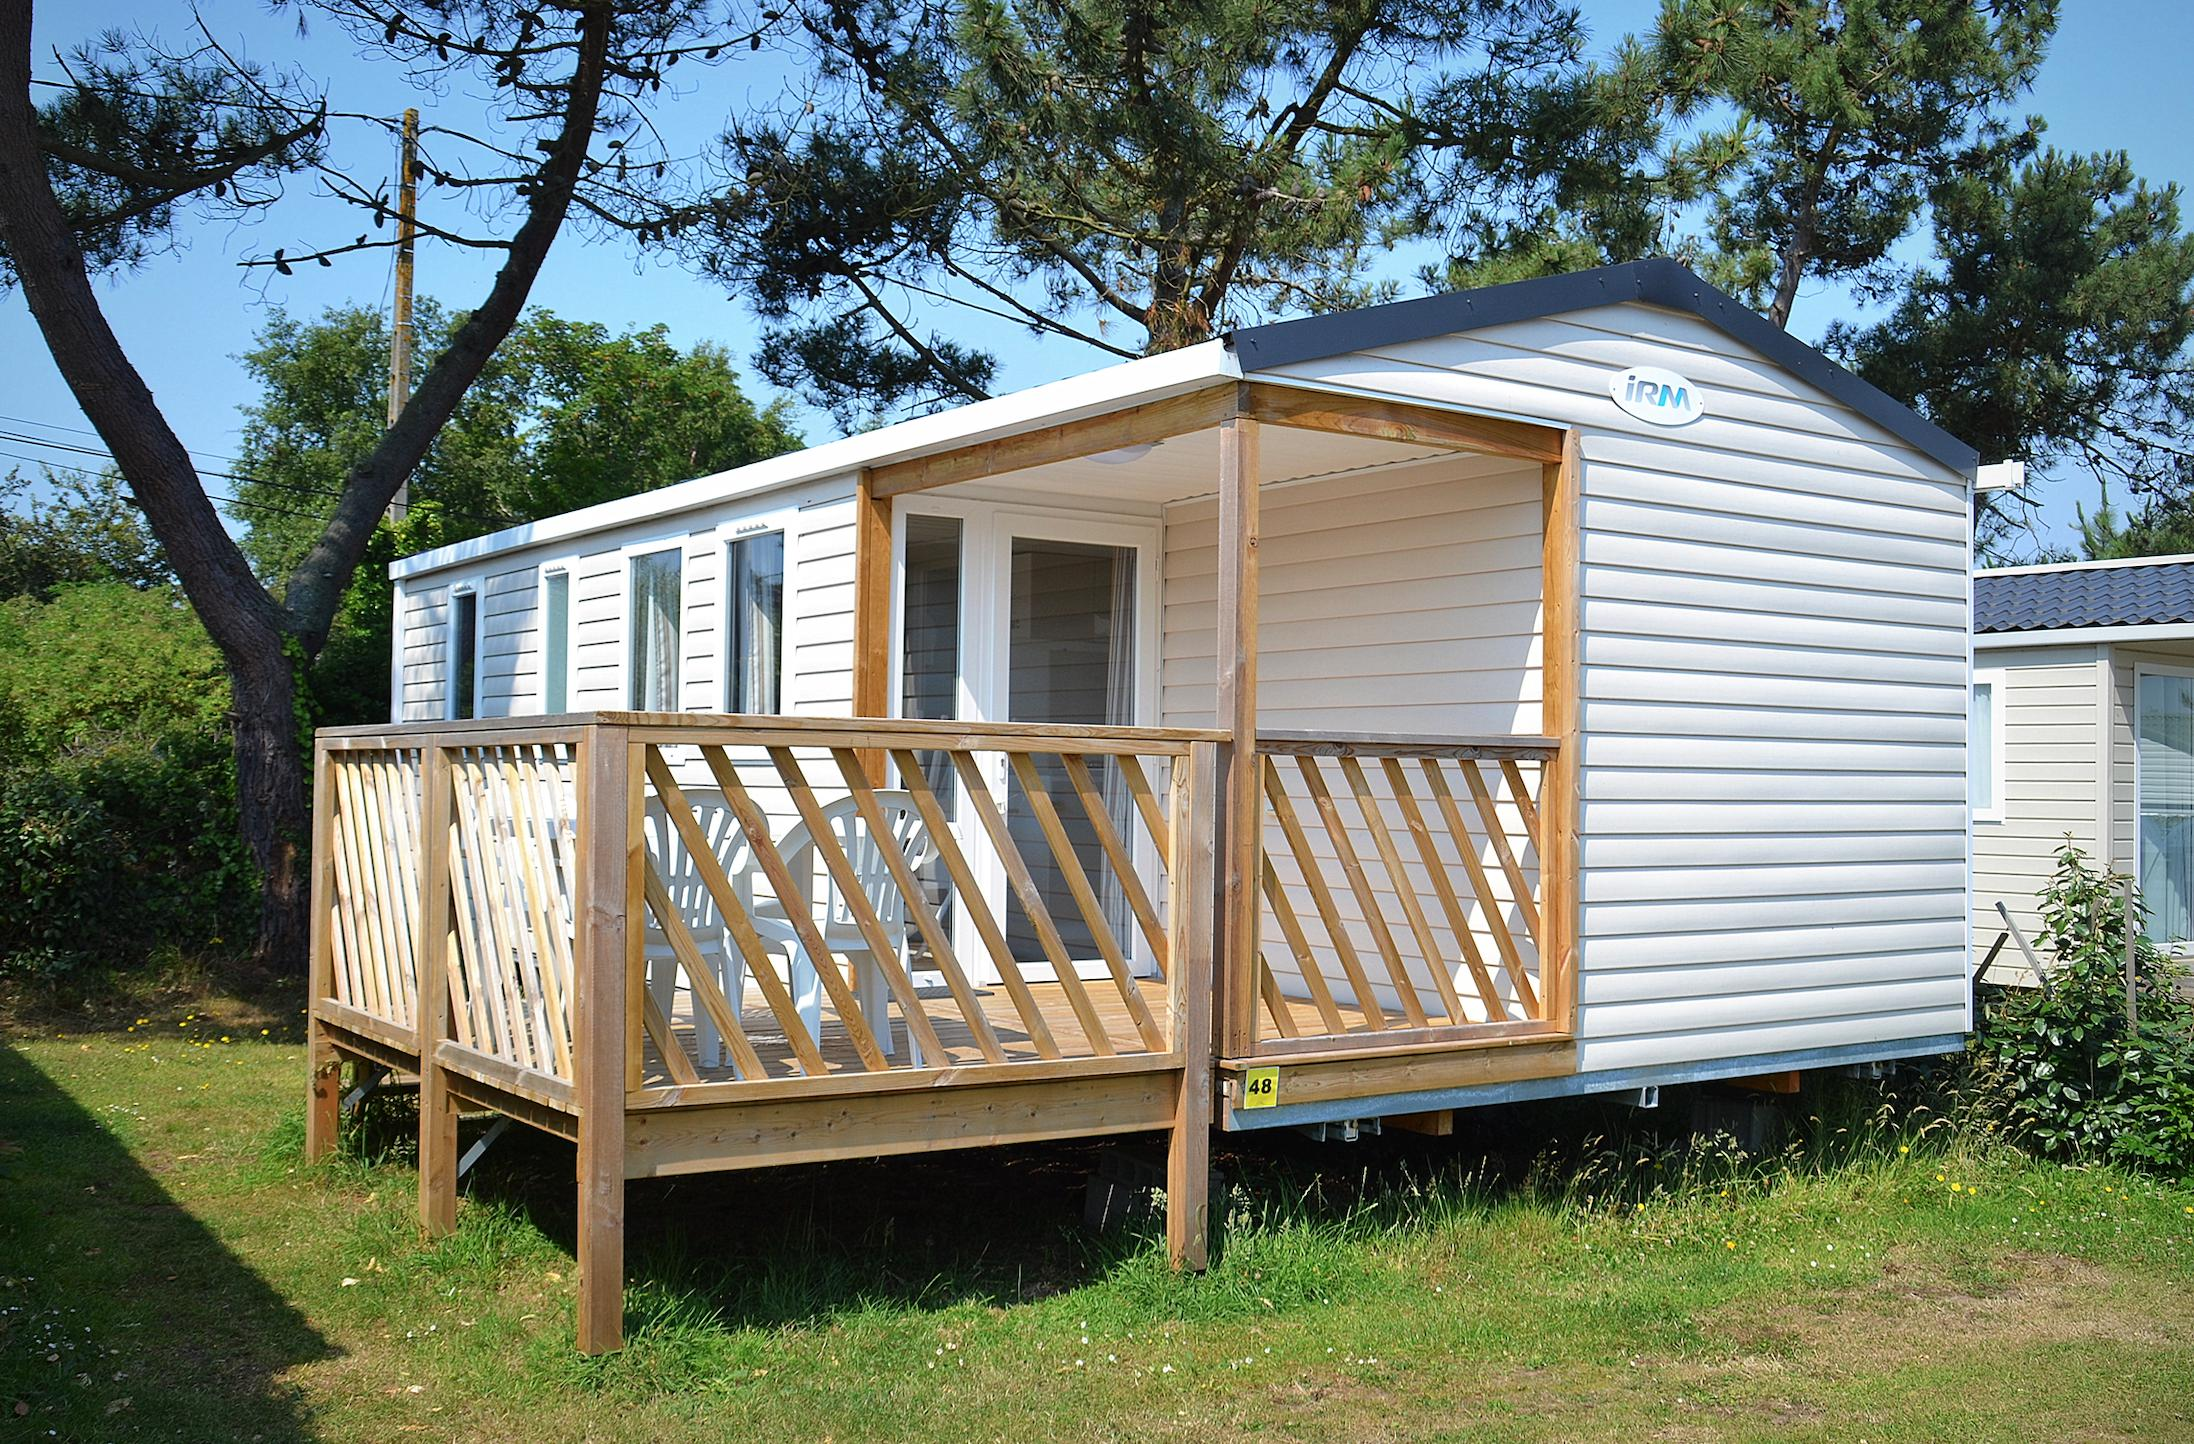 location mobil-home camping fermanville cotentin normandie